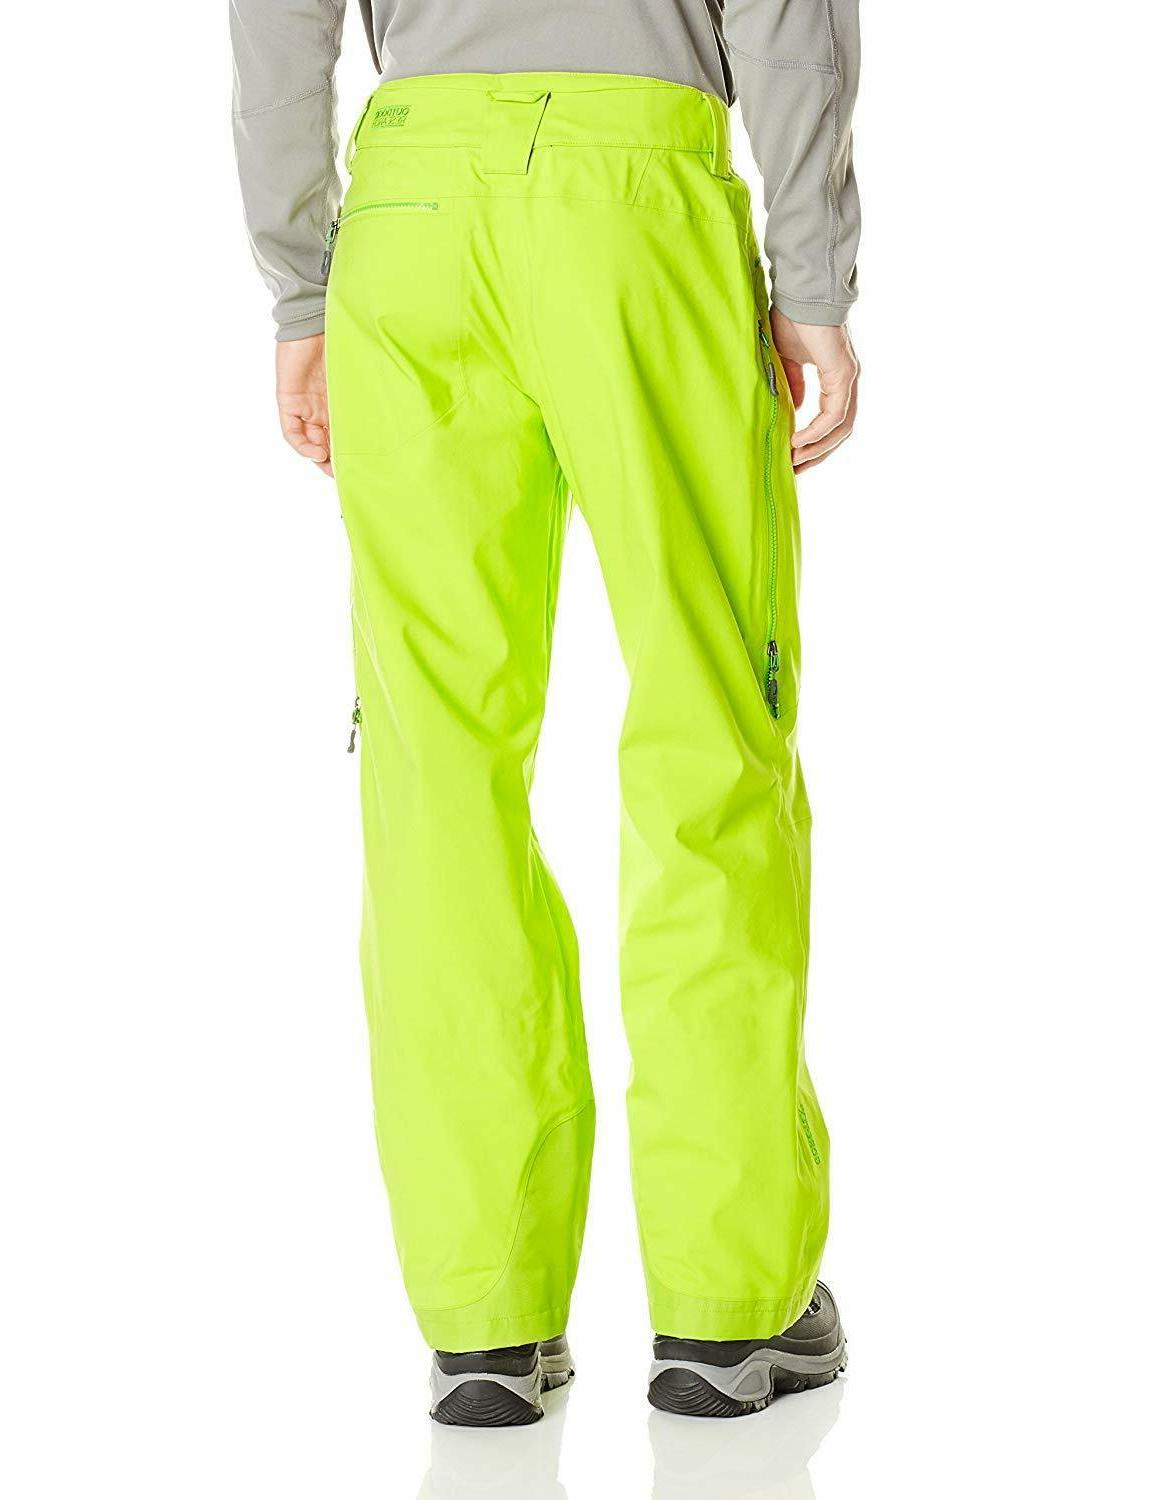 Outdoor Research PANTS 29W x